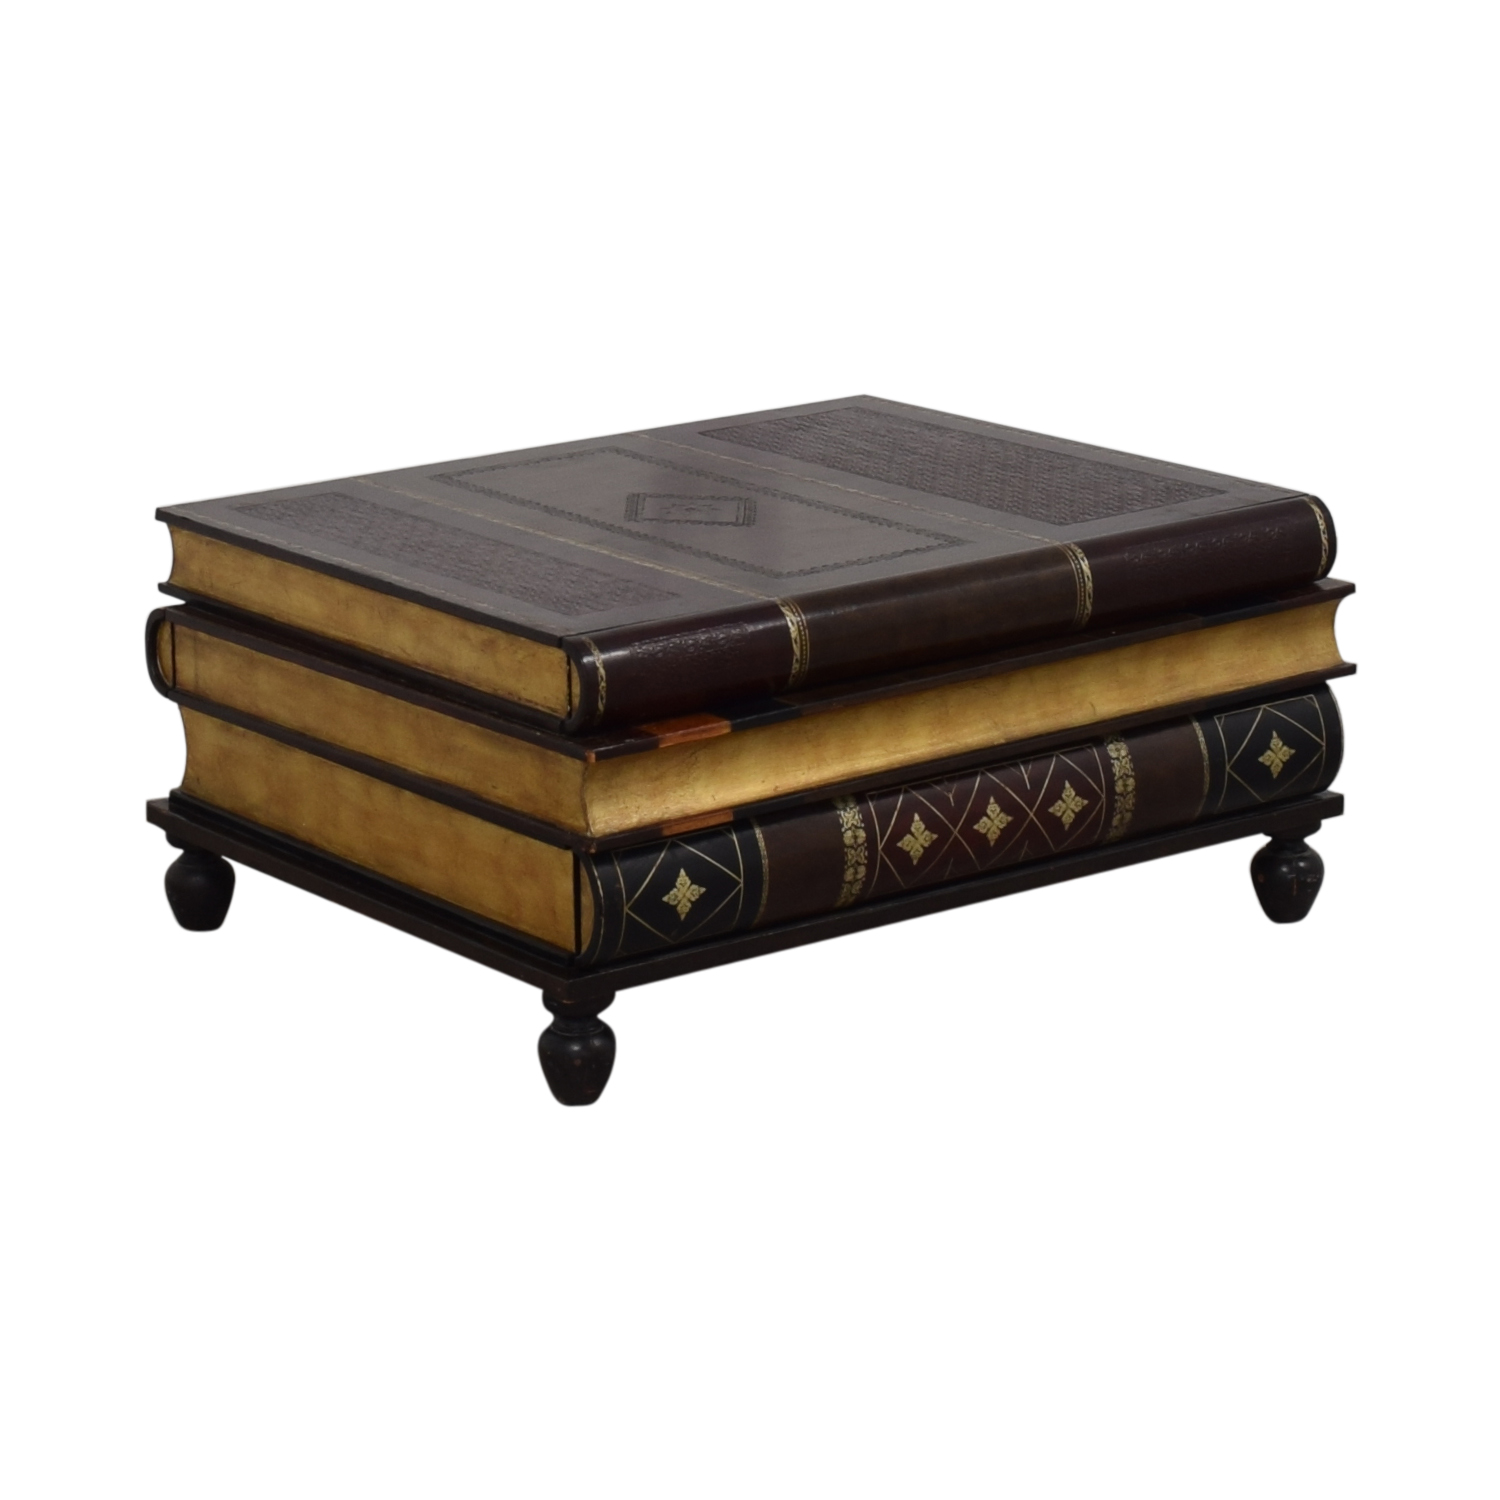 Maitland-Smith Maitland-Smith Stacked Books Style Coffee Table